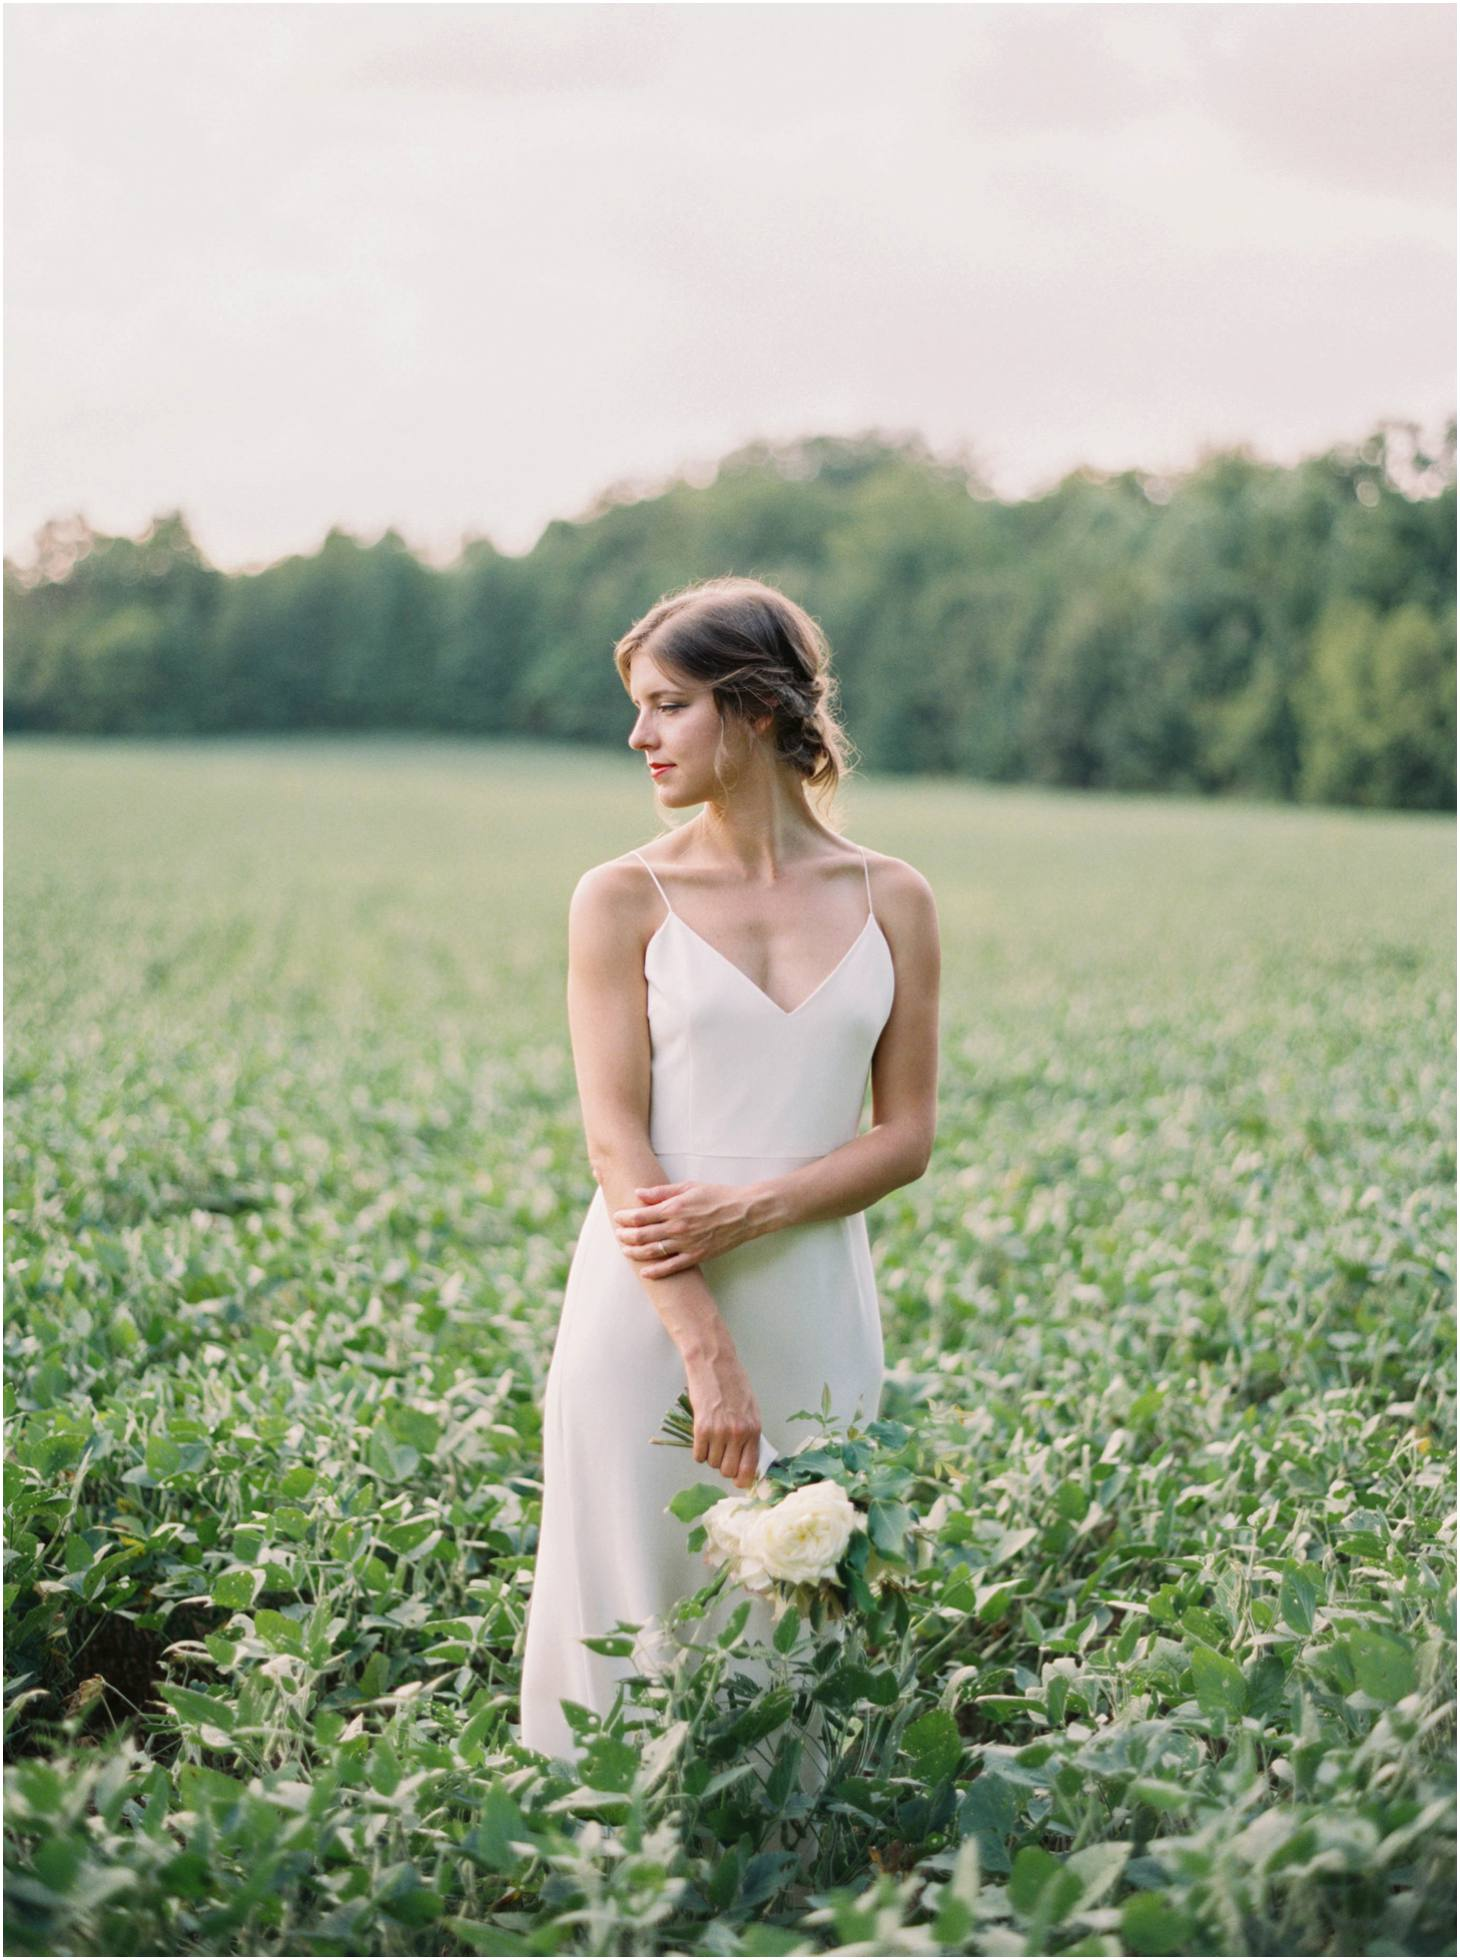 kim-stockwell-photography-fine-art-film-bridals-richmond-va-peyton_0865